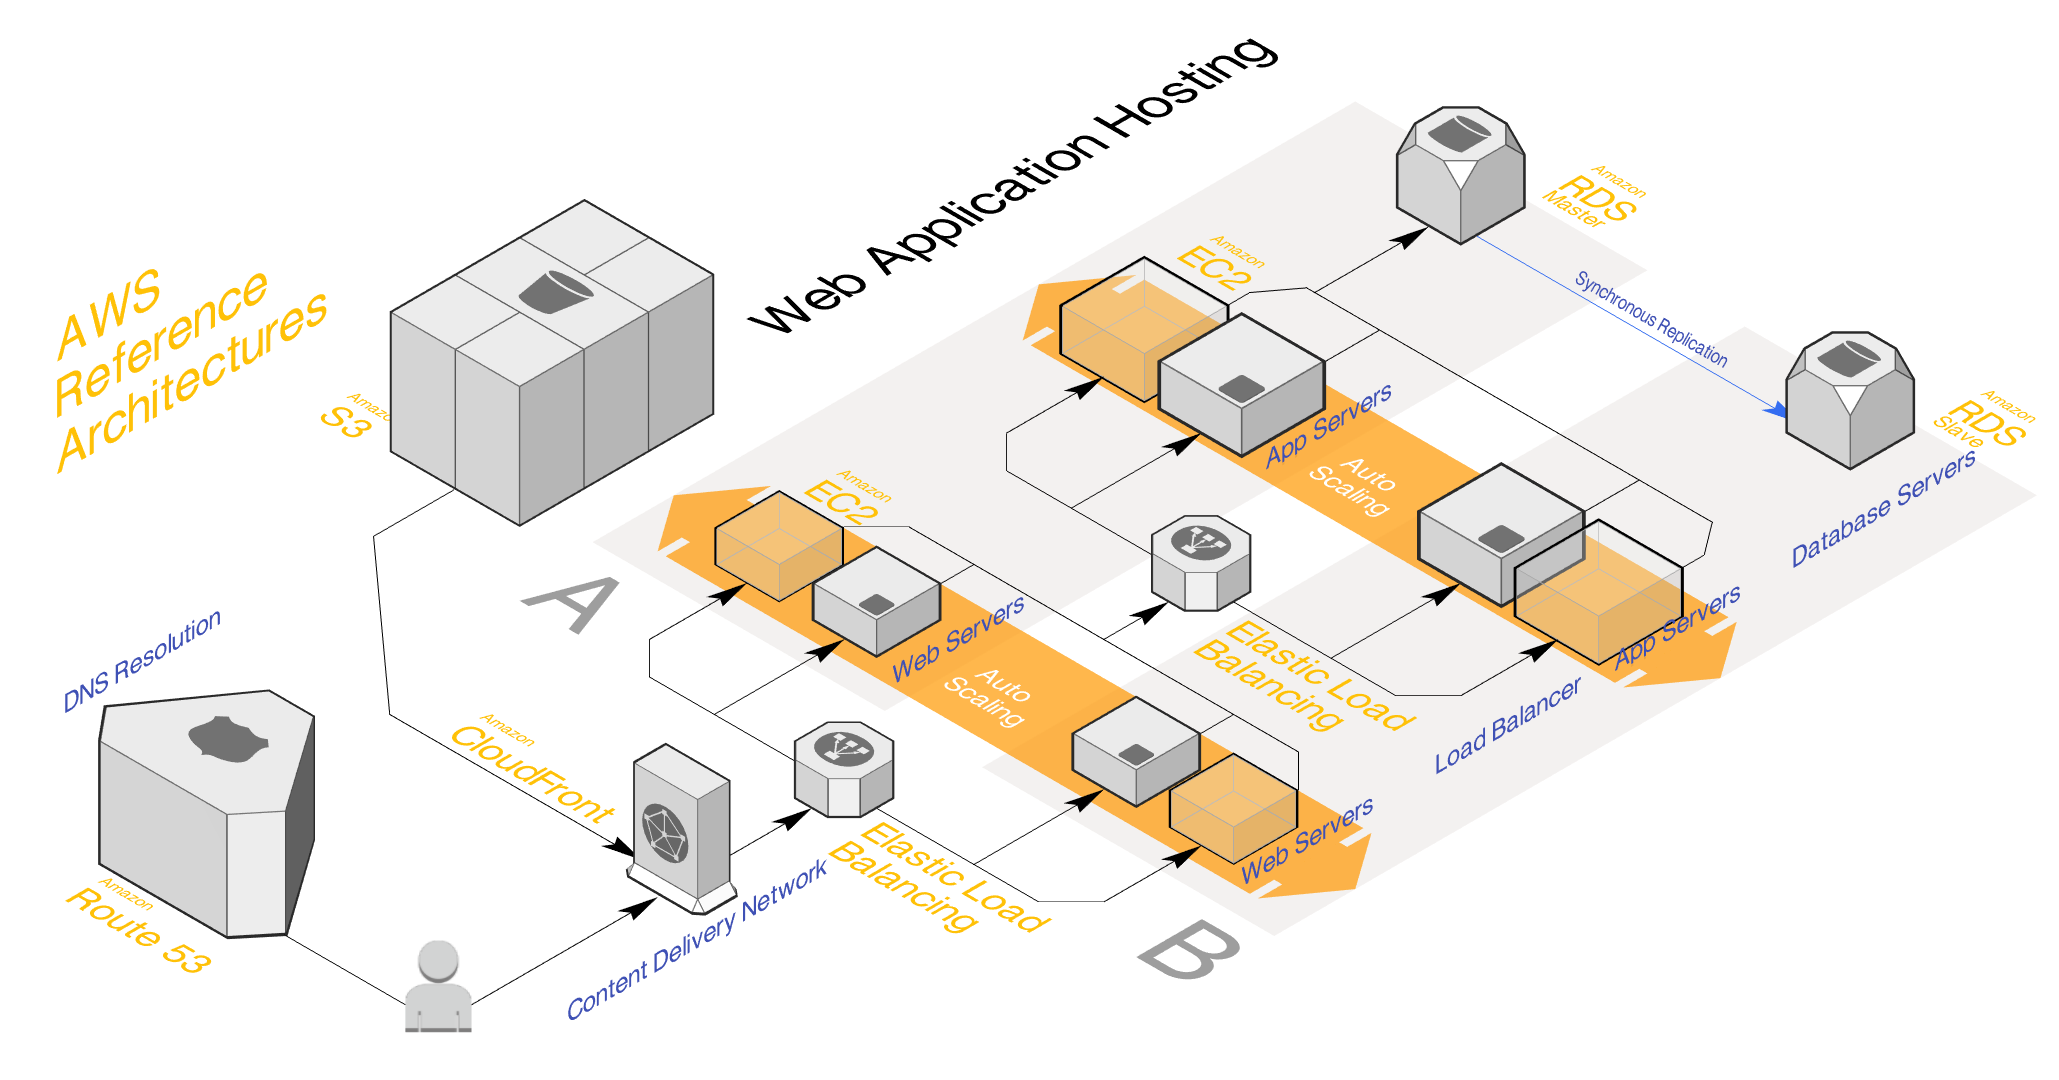 stackdraft perspective diagram view